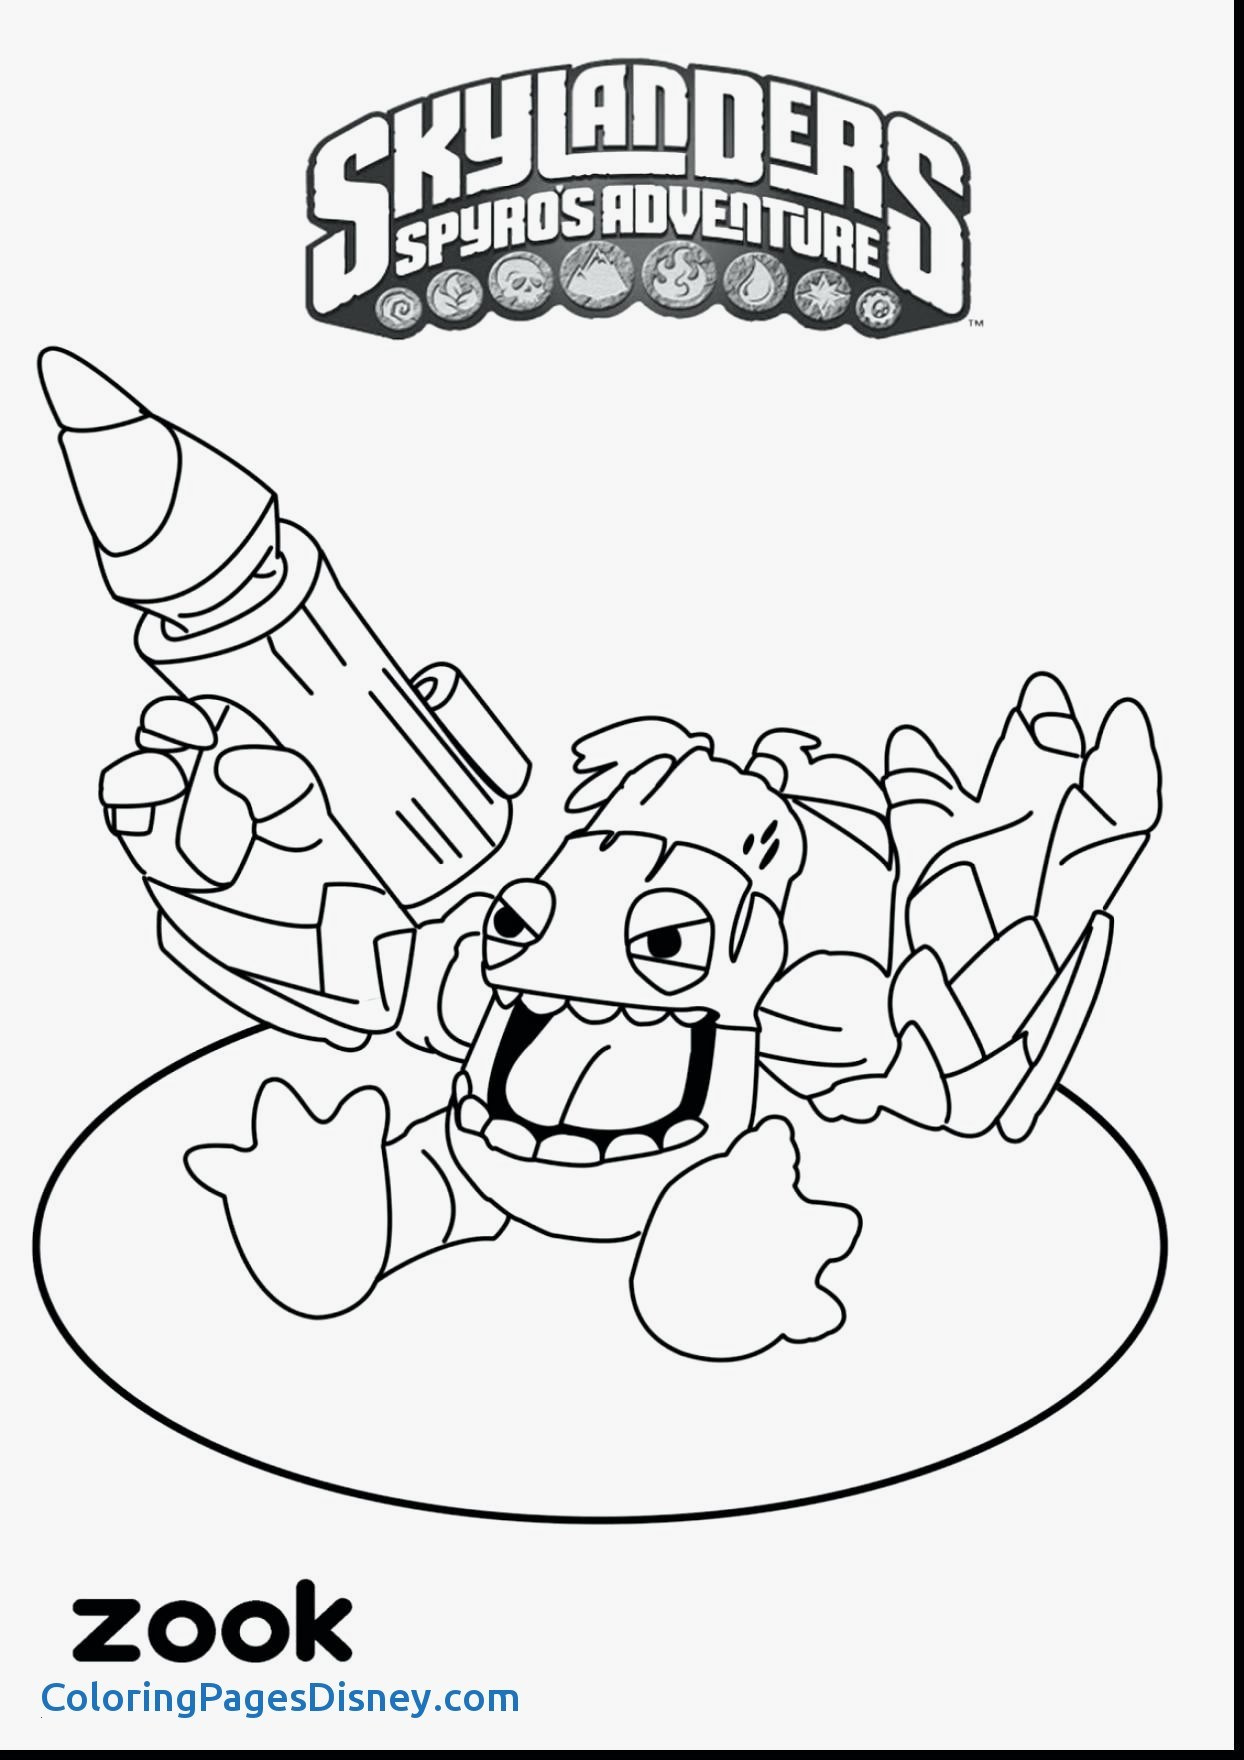 missionary coloring pages Download-Coloring Pages Ghost Unique Ghost Coloring Pages Letramac 1-a